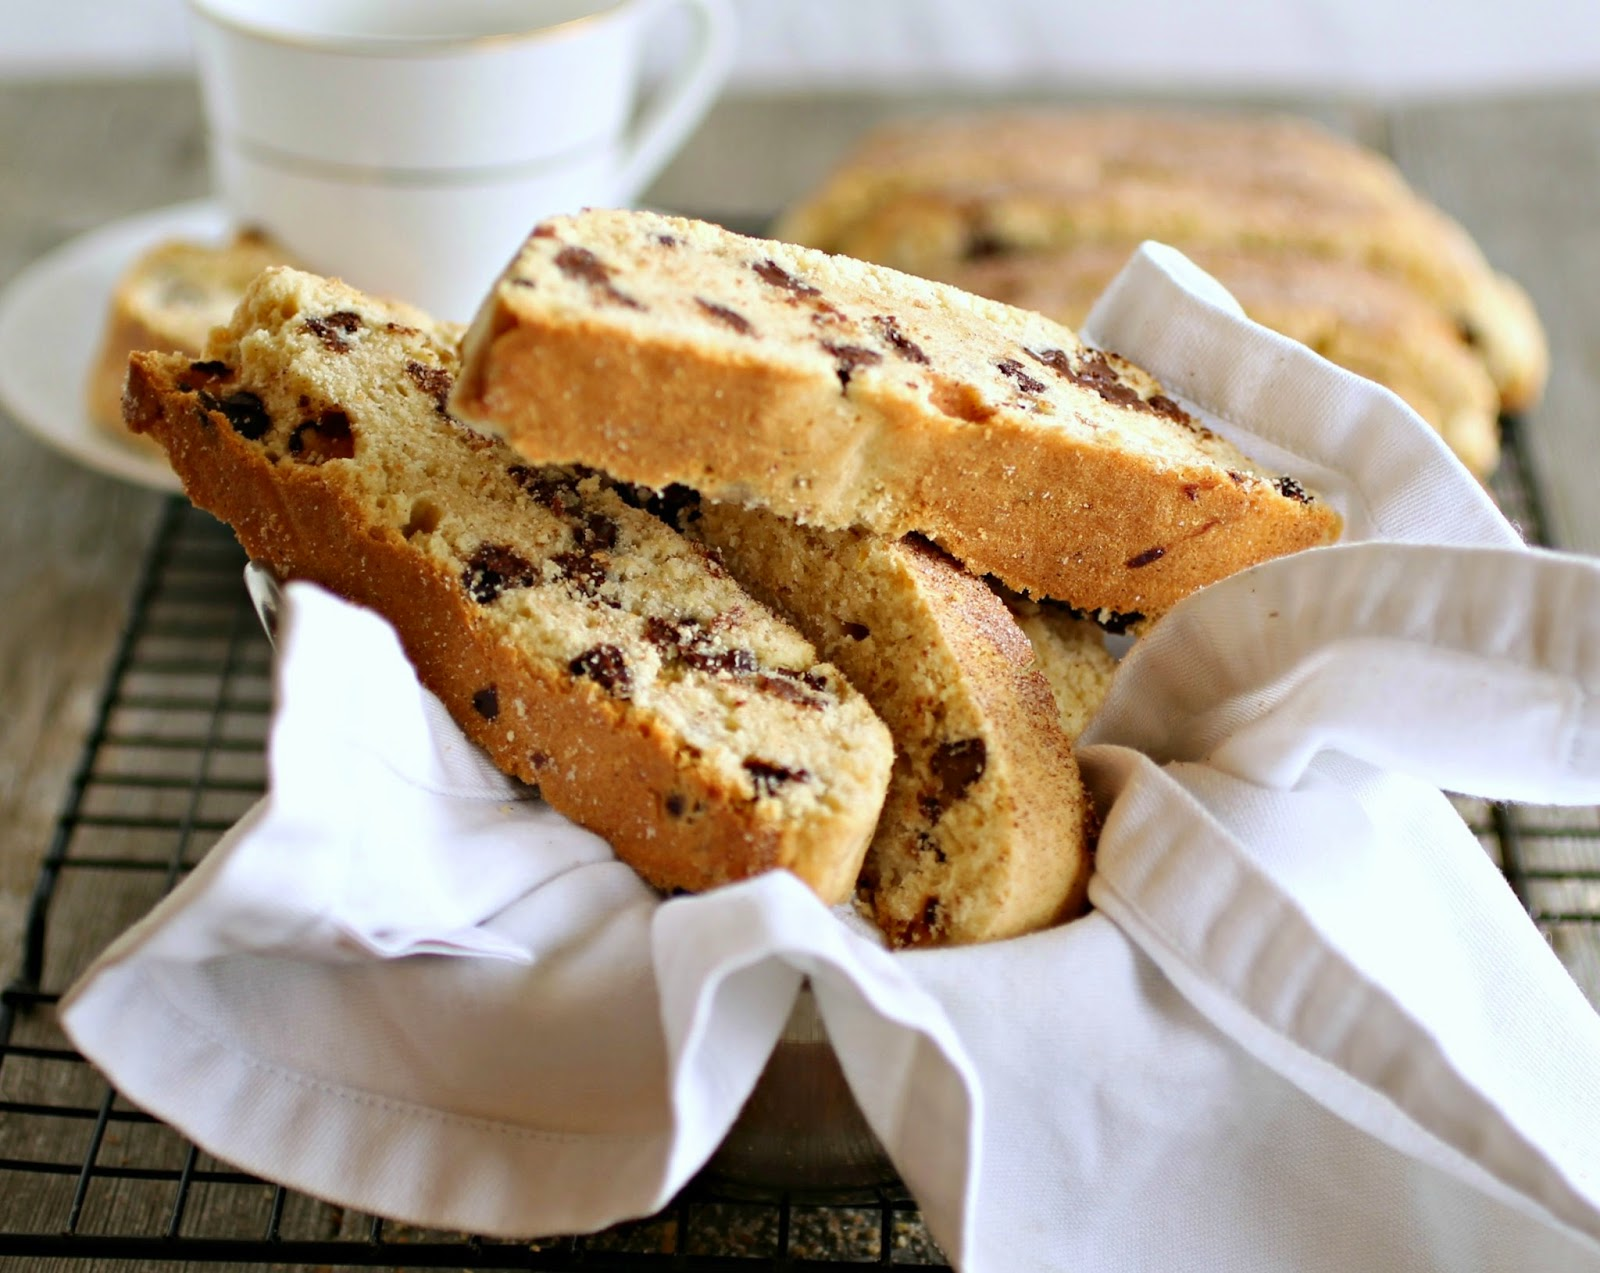 ... Couple: Passover Chocolate Chip Mandel Bread (Jewish Biscotti Cookies